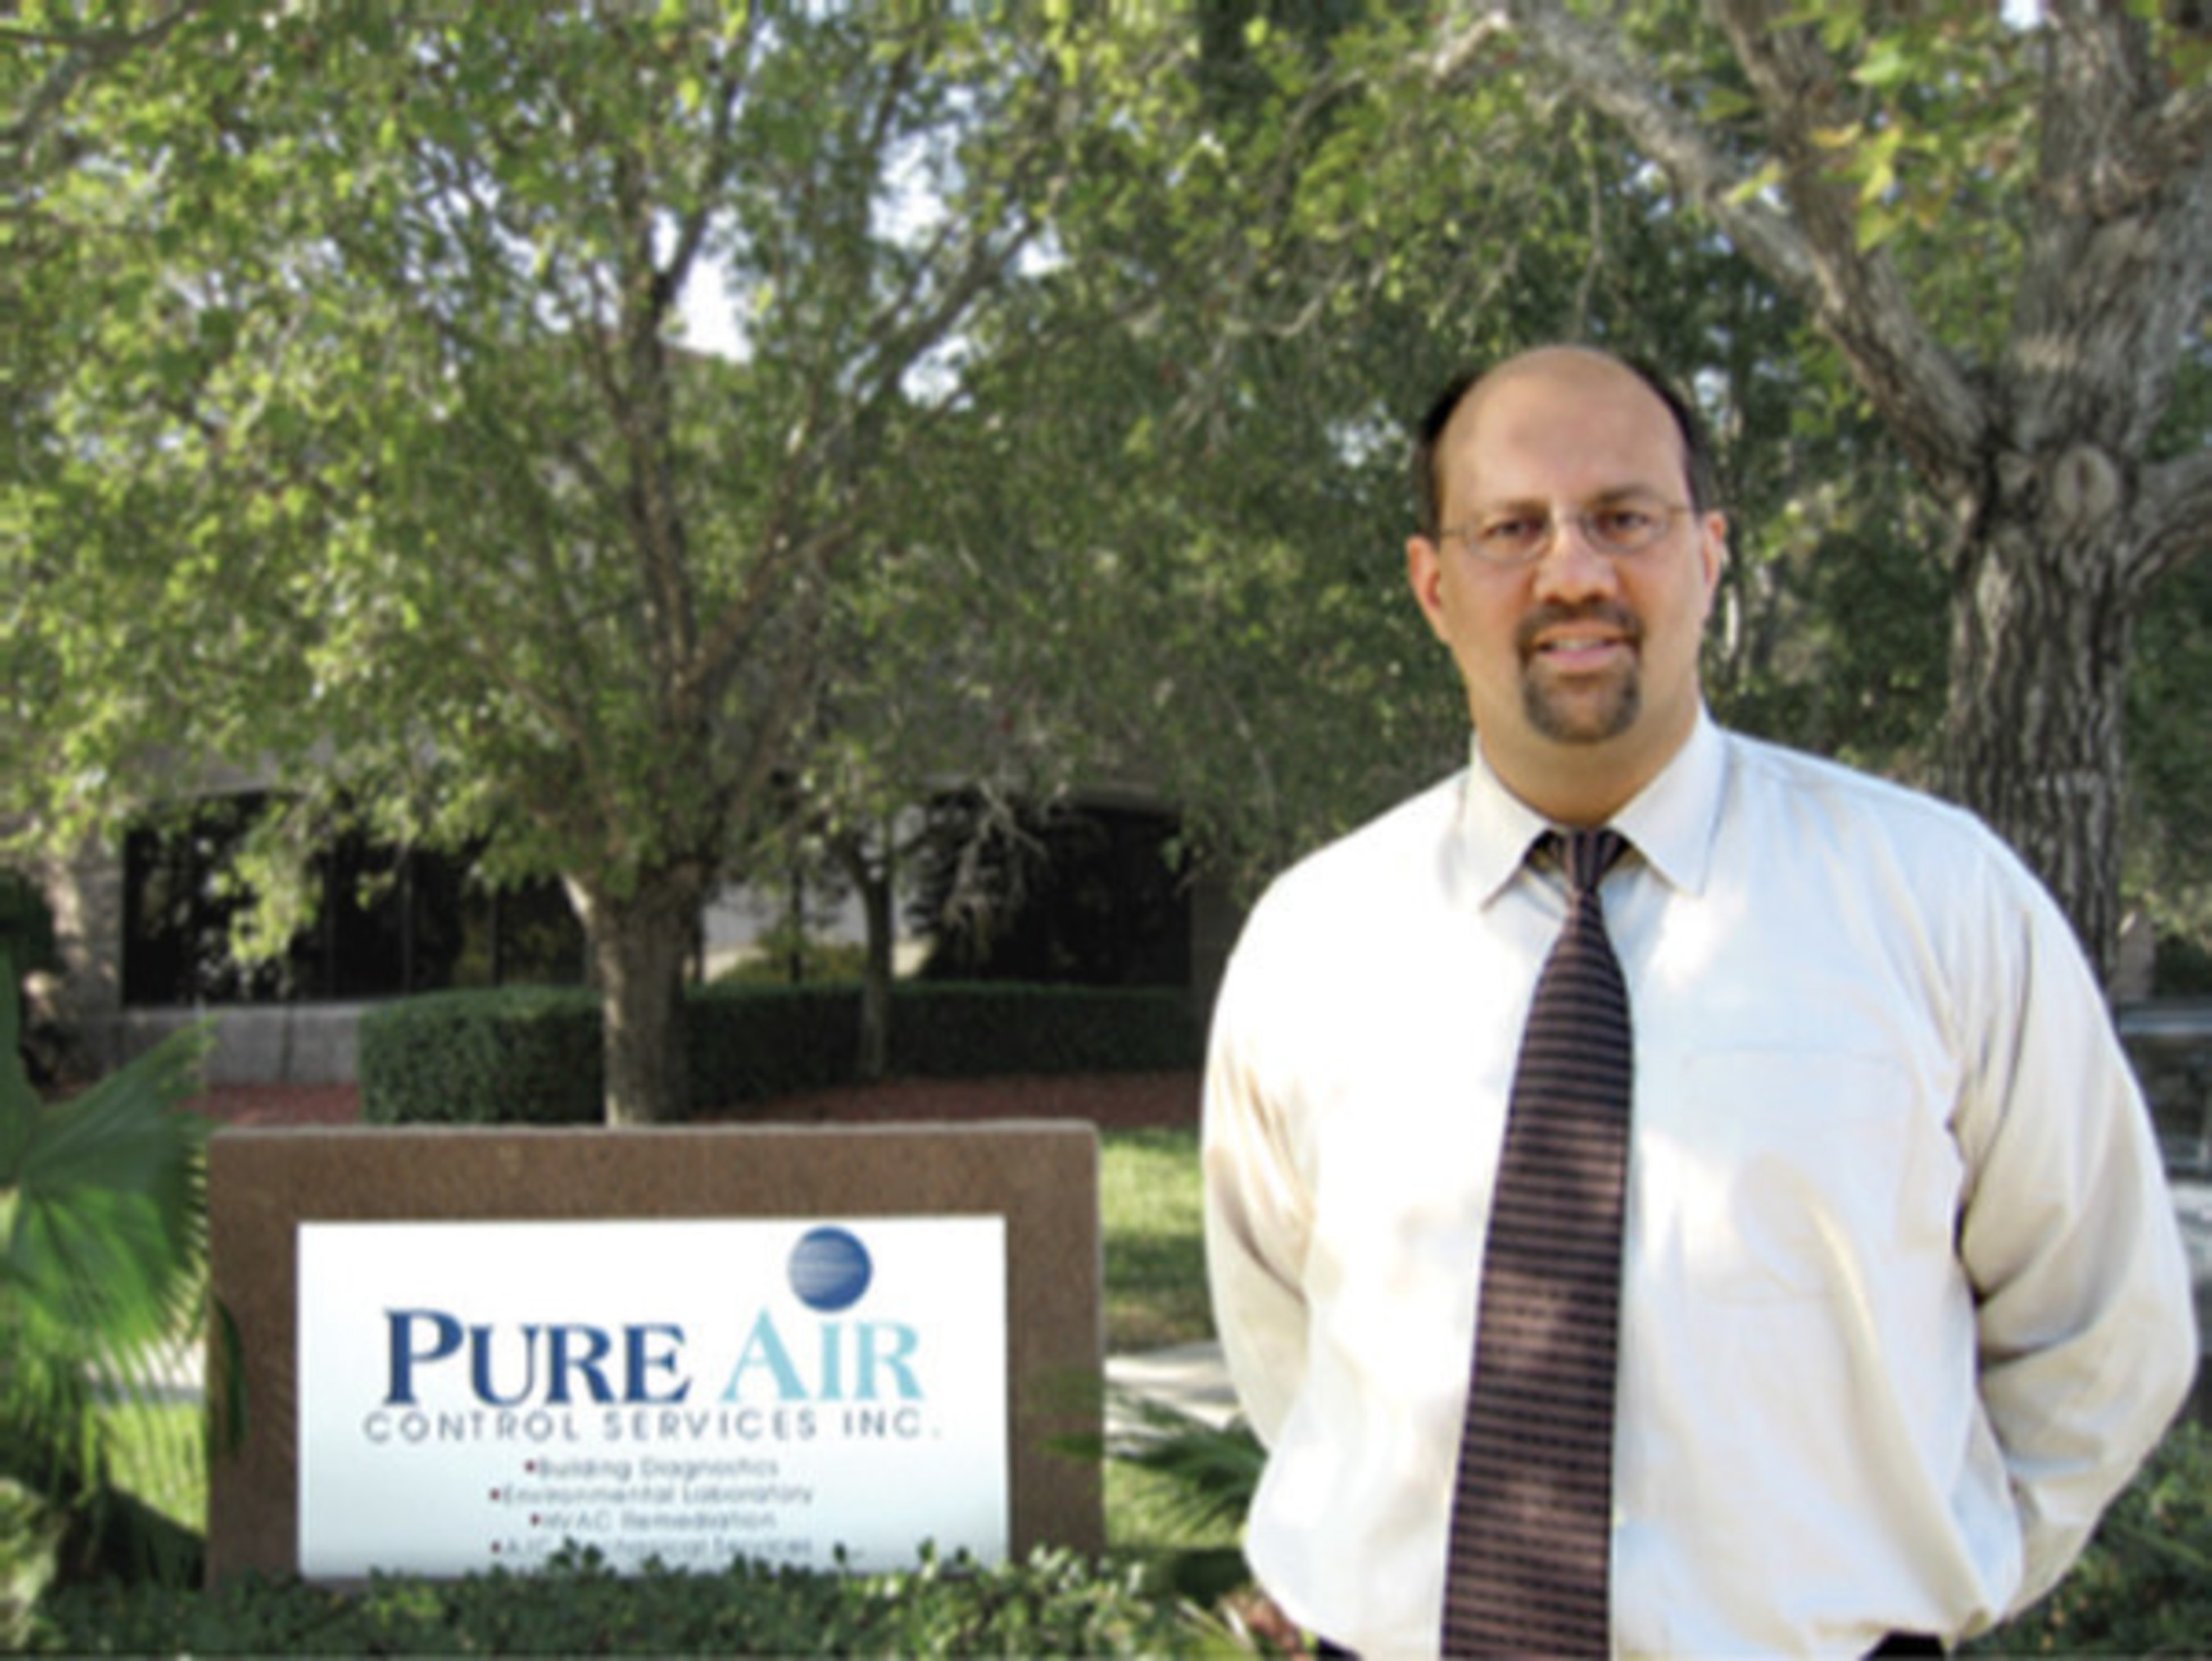 Pure Air Control Services honored for fast growth in Inc. Magazines 5000